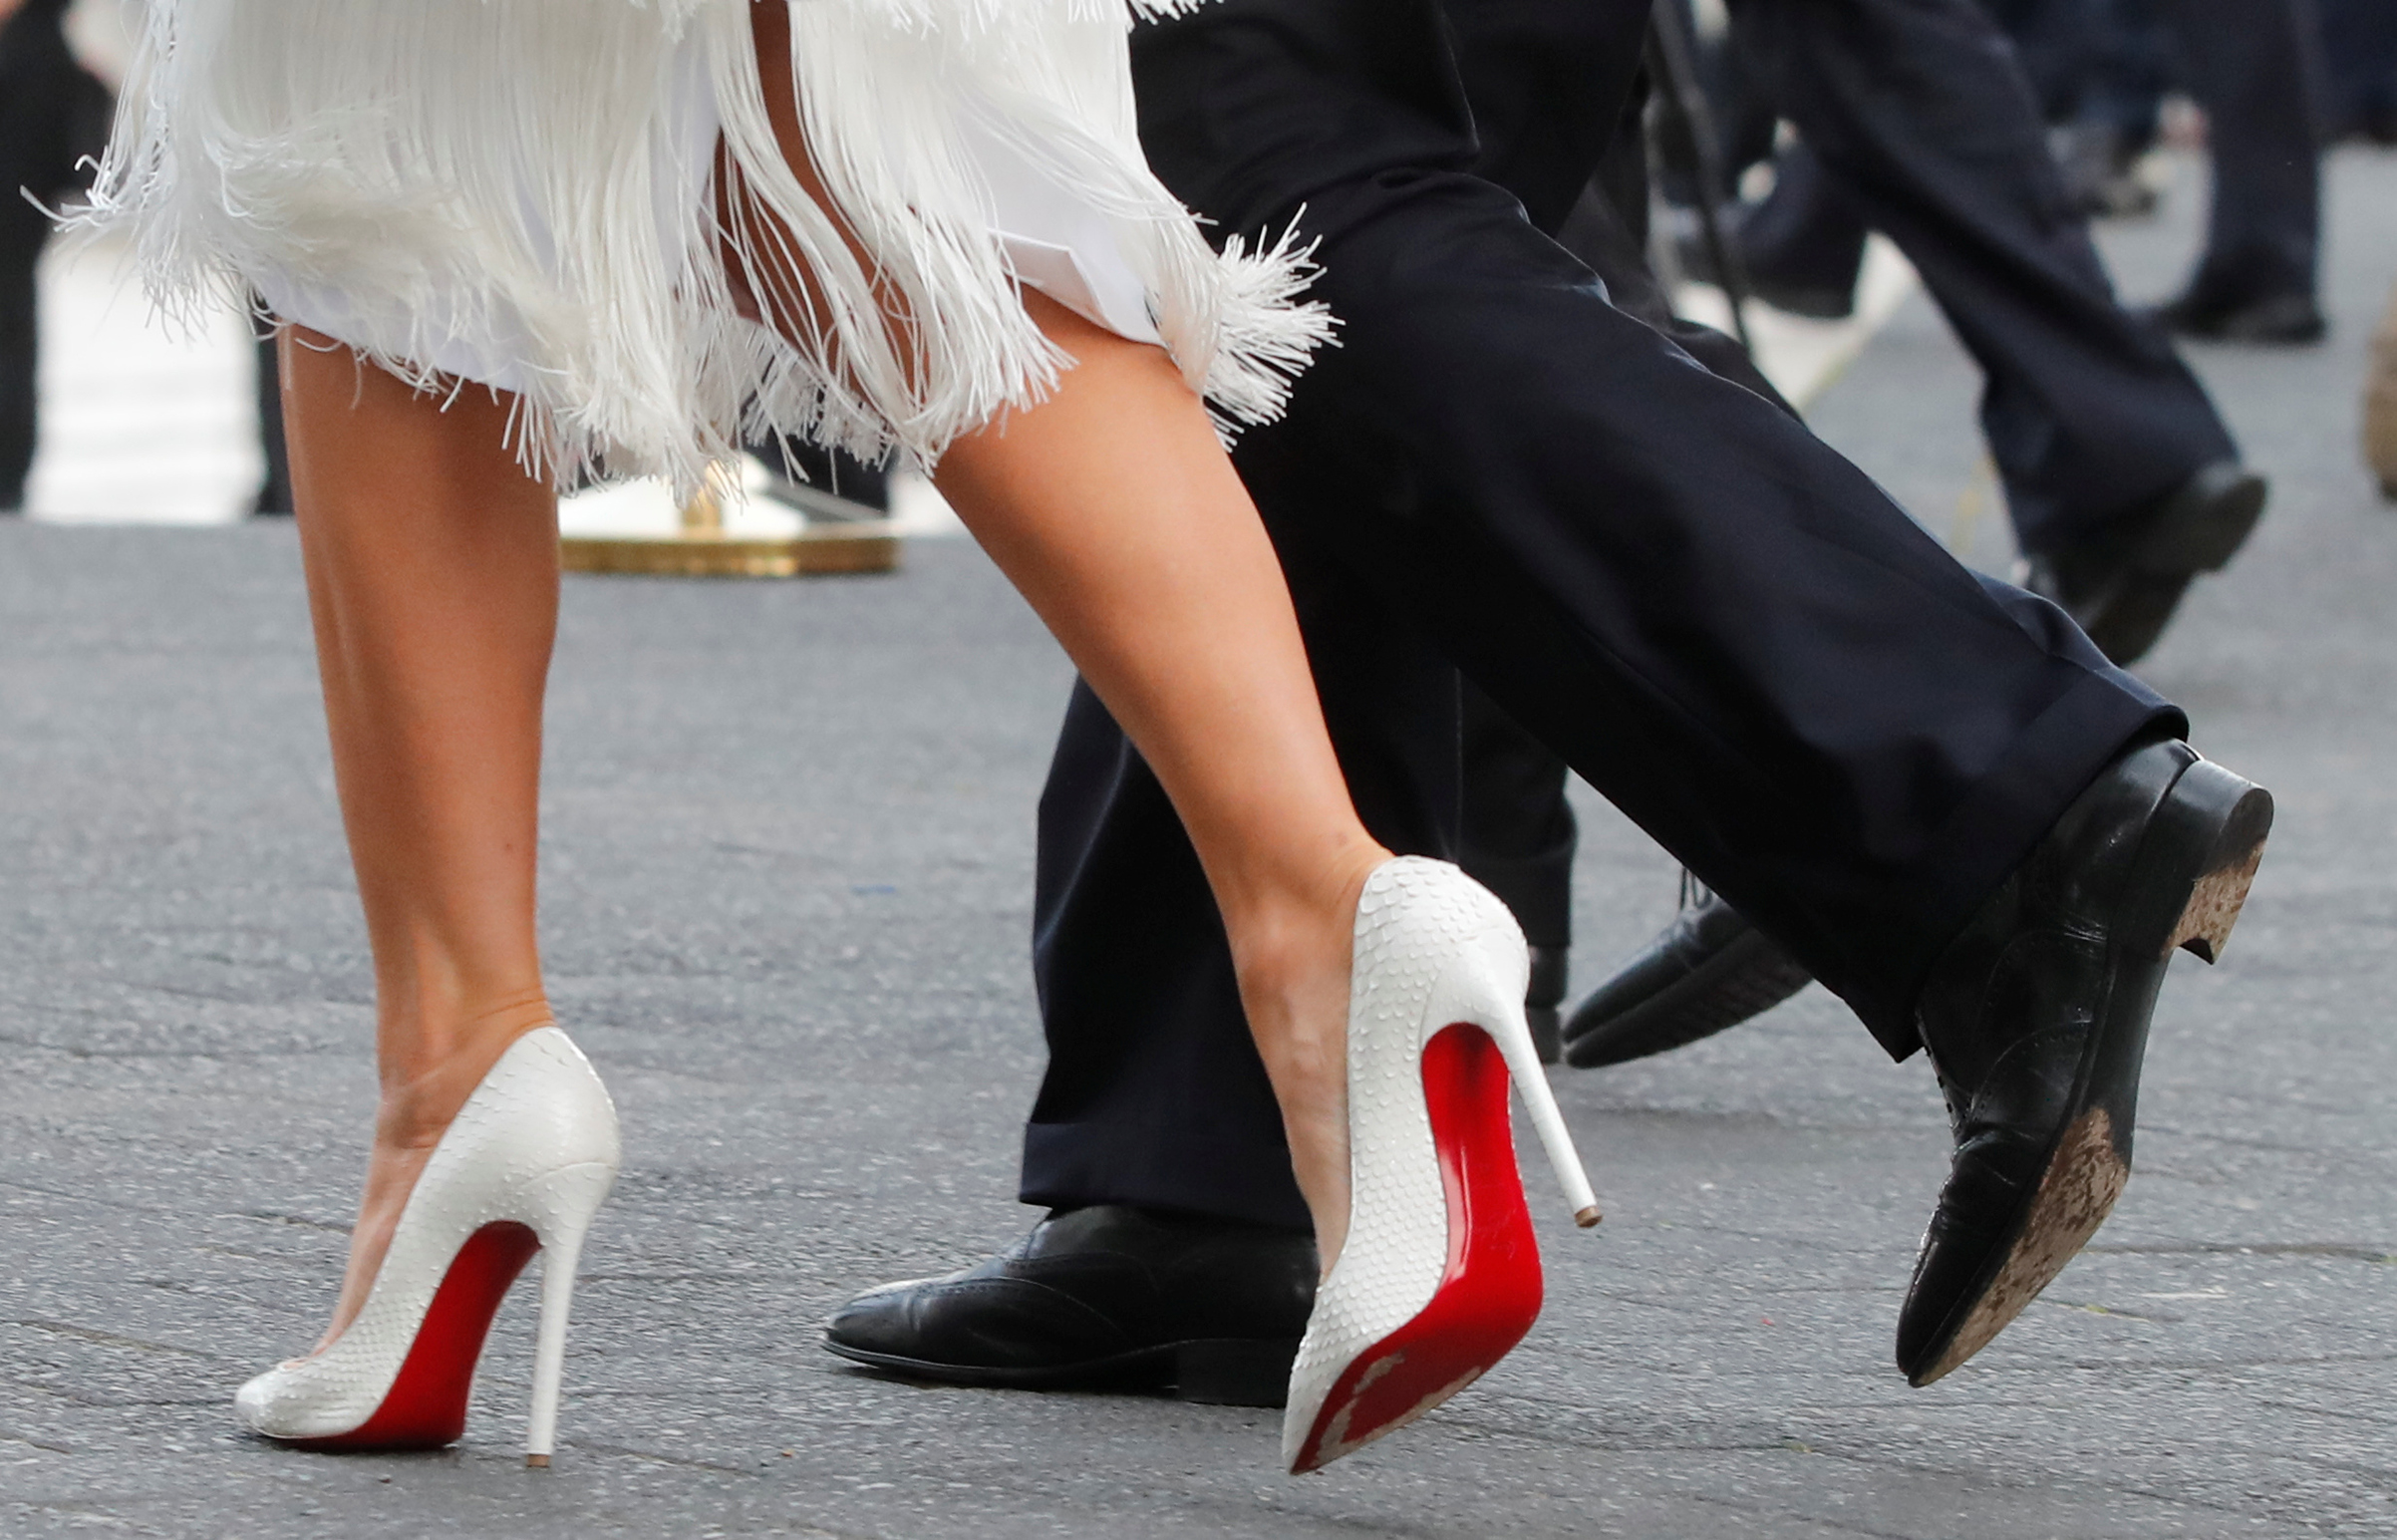 President Donald Trump and his wife Melania Trump wearing Christian Louboutin white stilettos , are seen at the G20 summit in Hamburg, Germany July 7, 2017.